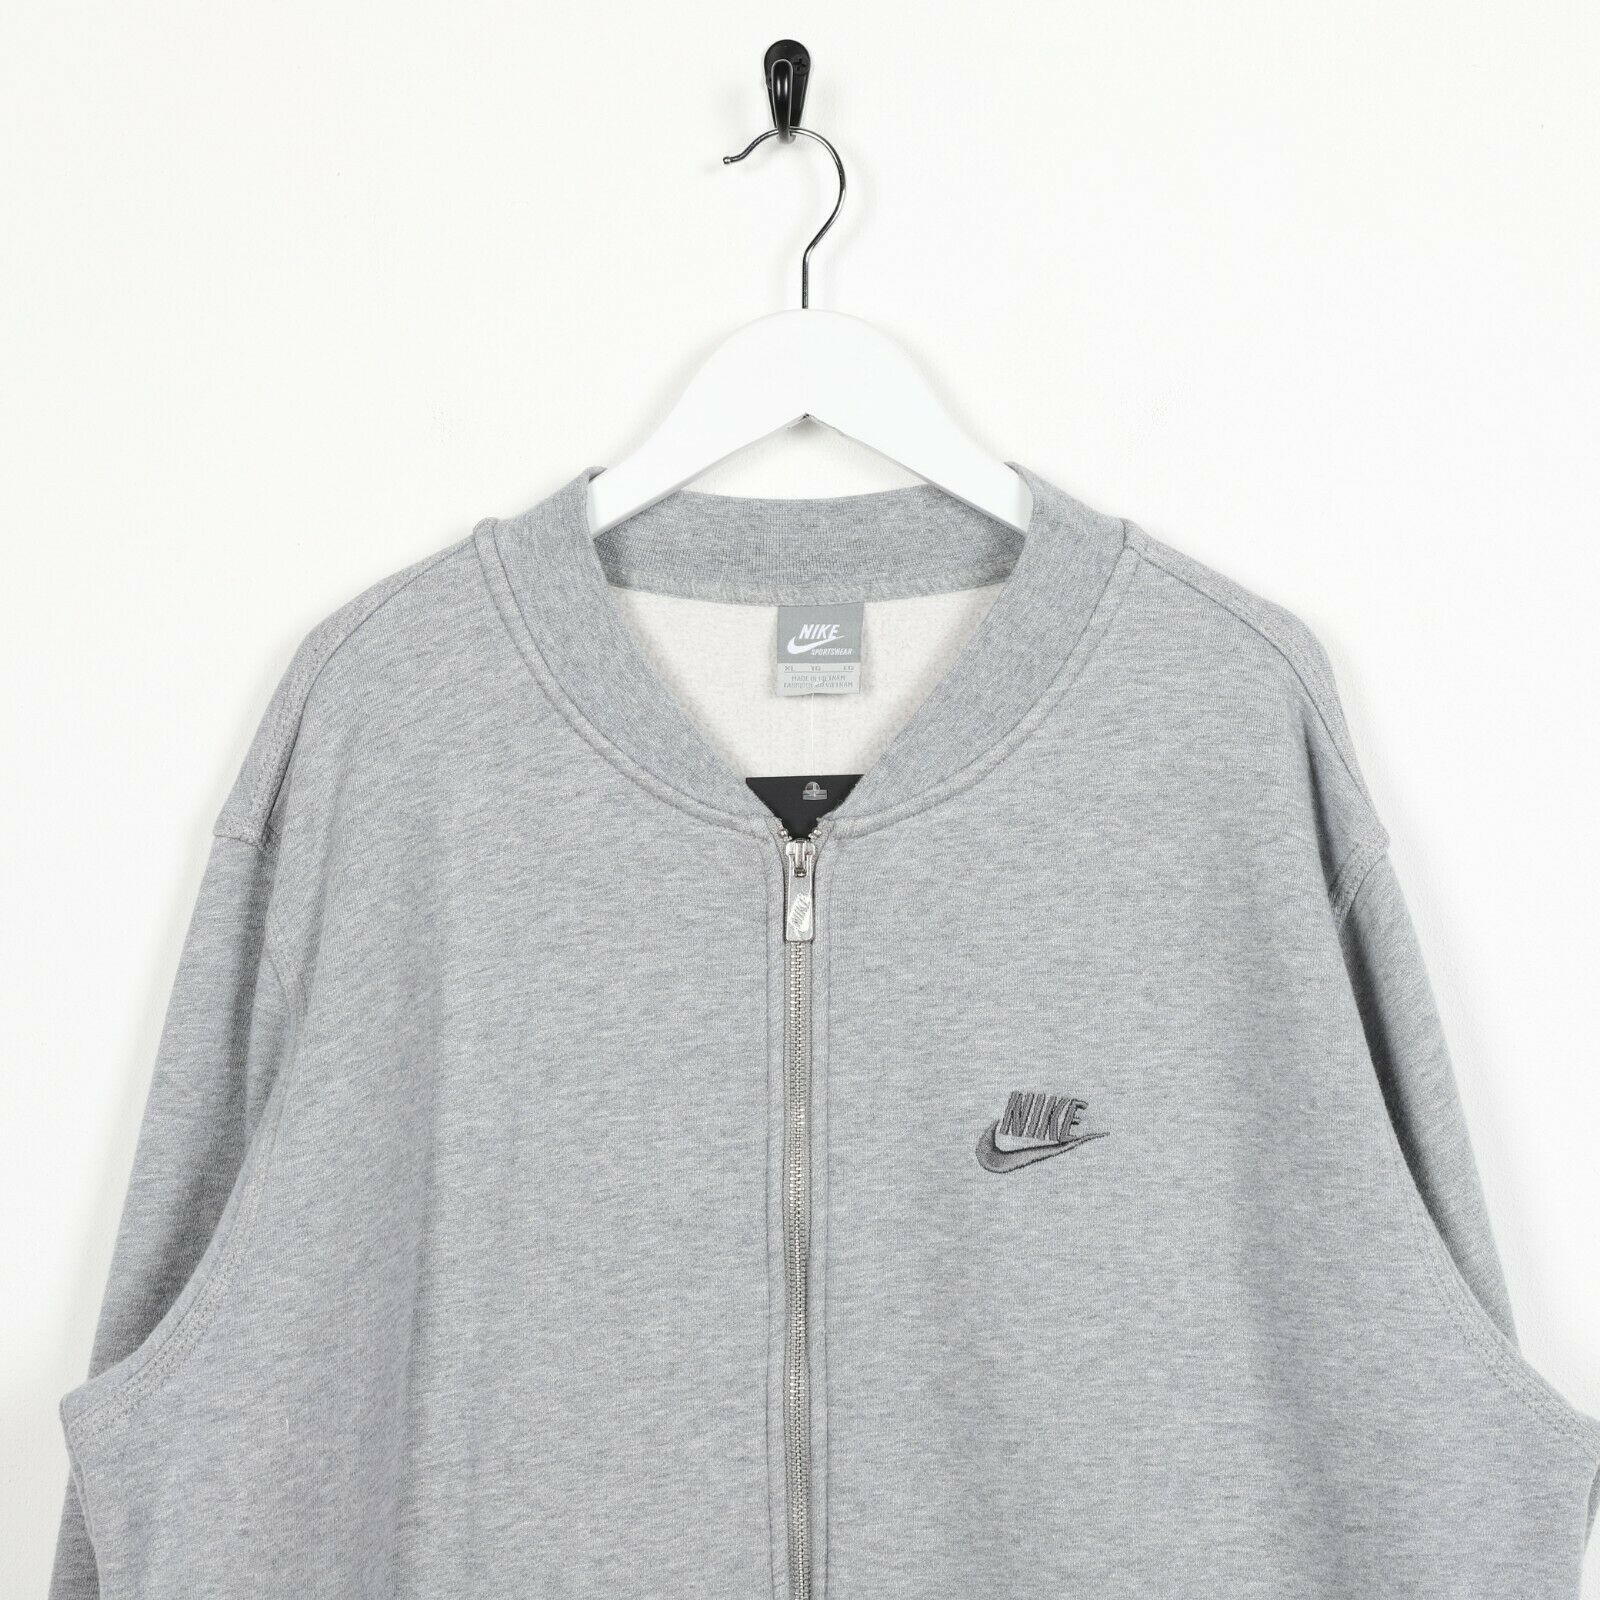 Vintage NIKE Small Logo Zip Up Sweatshirt Jumper Grey | XL